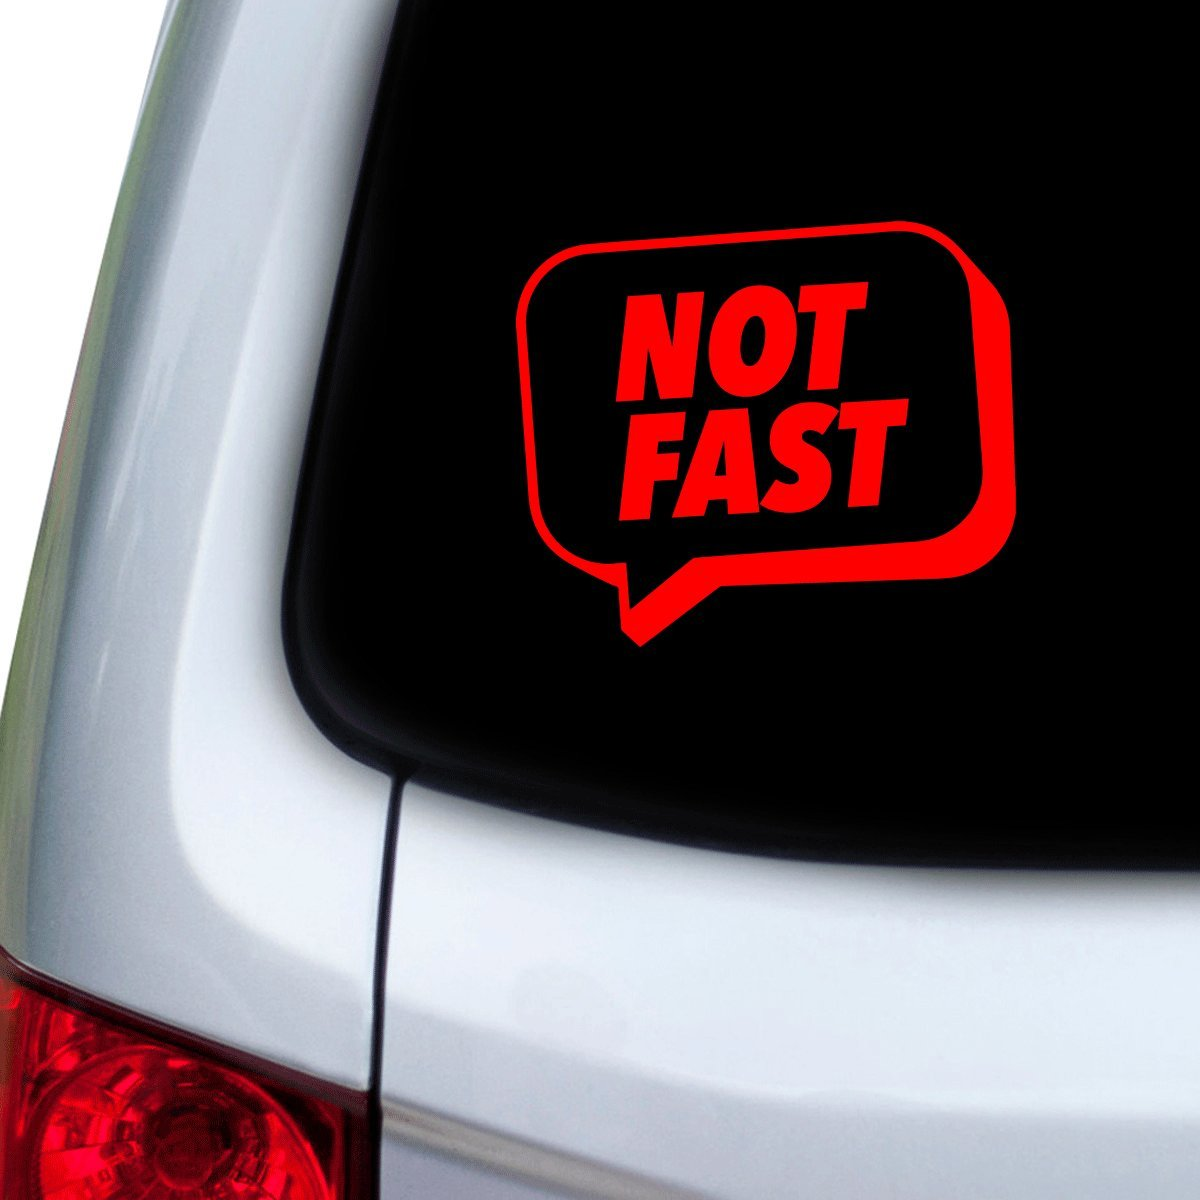 StickAny Car and Auto Decal Series Not Fast Speech Bubble Sticker for Windows Red Hoods Doors